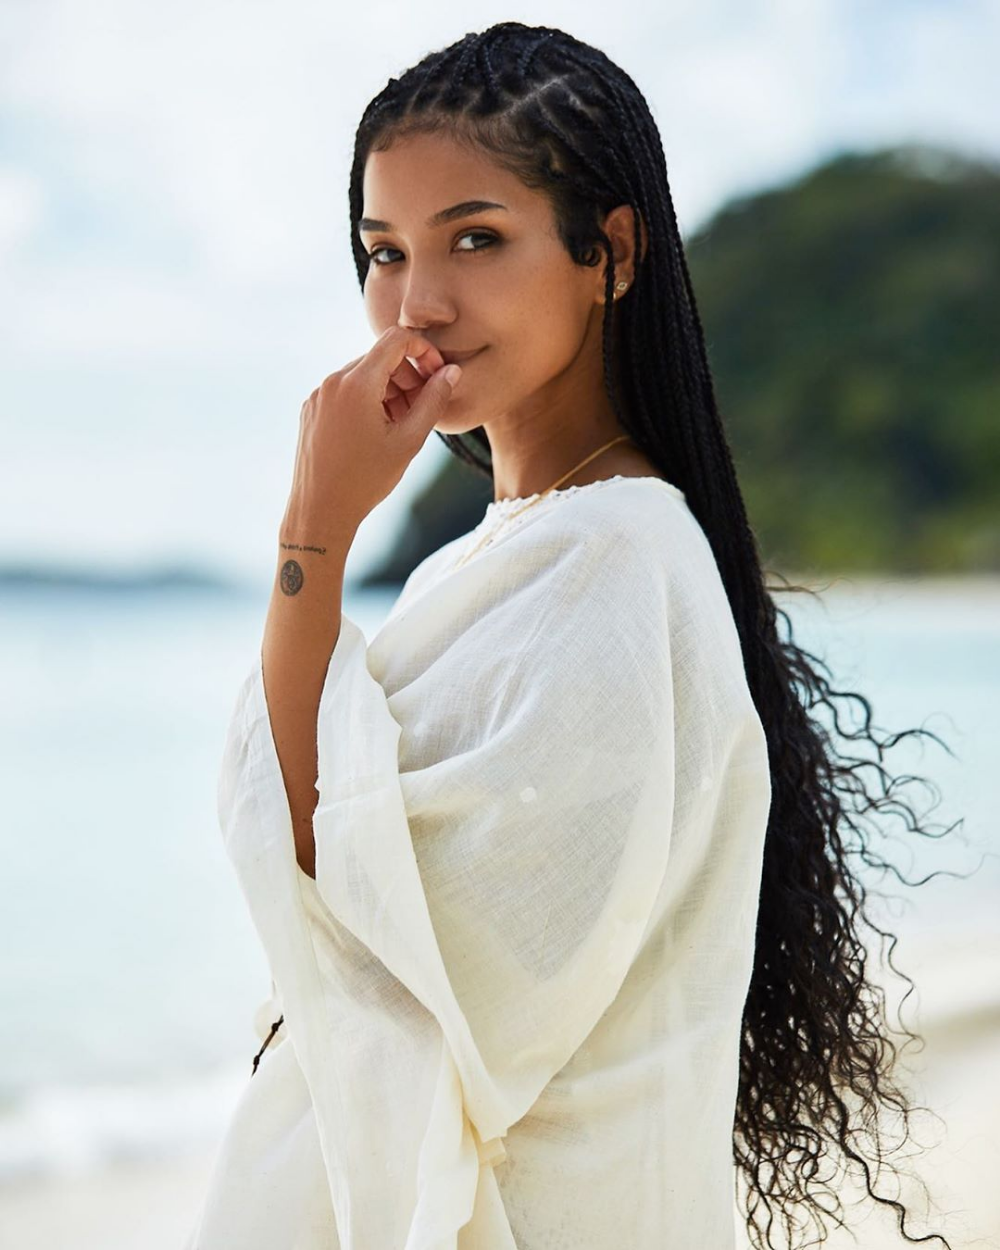 Jhené Aiko Credits This Completely Free Thing With Glowing Skin (And It's Not Water)